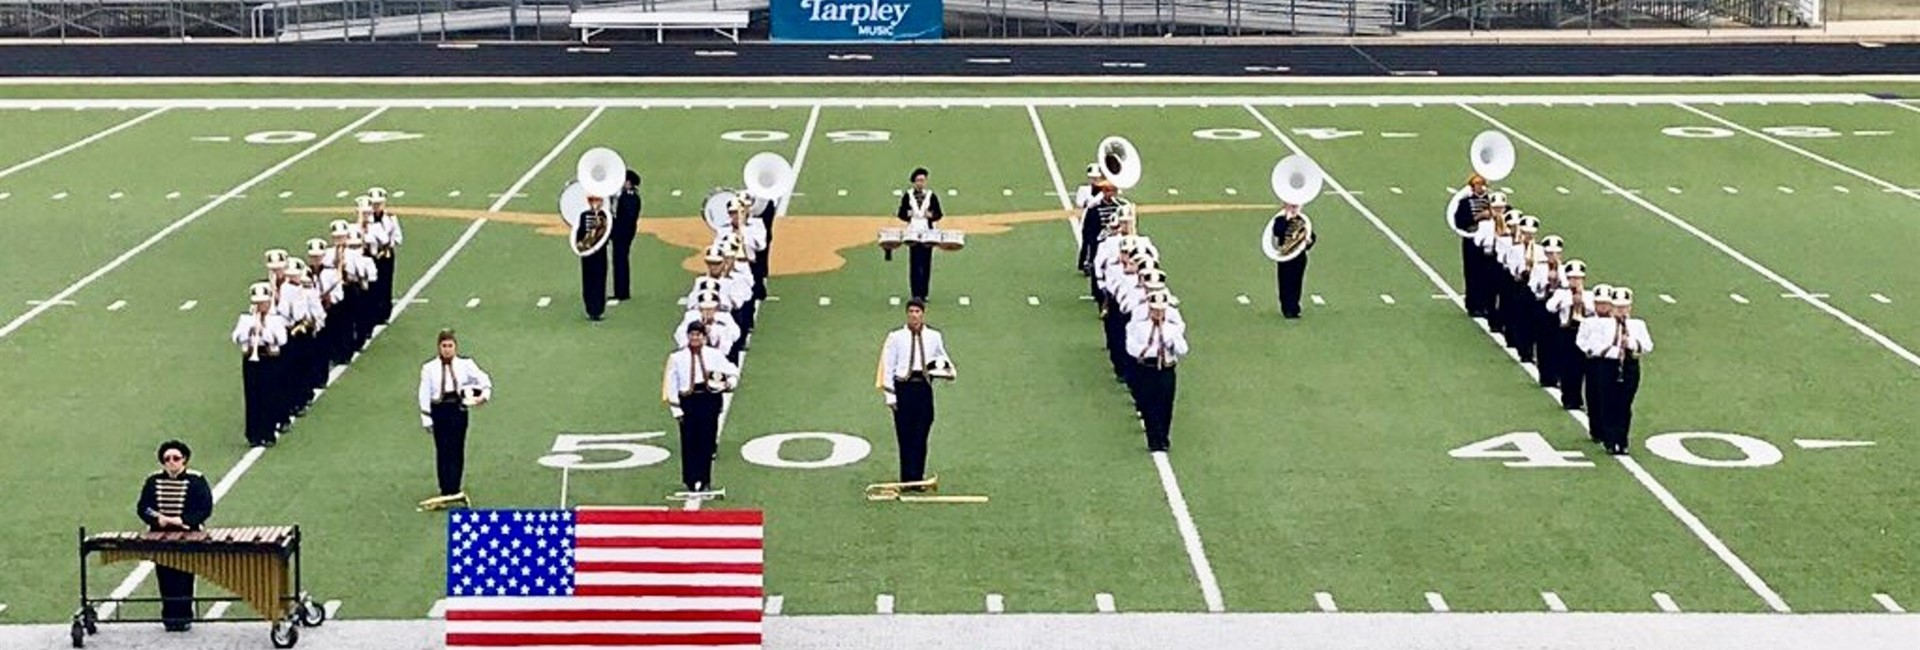 Mighty Mountaineer Marching Band Earn SUPERIOR Score - Headed to STATE!